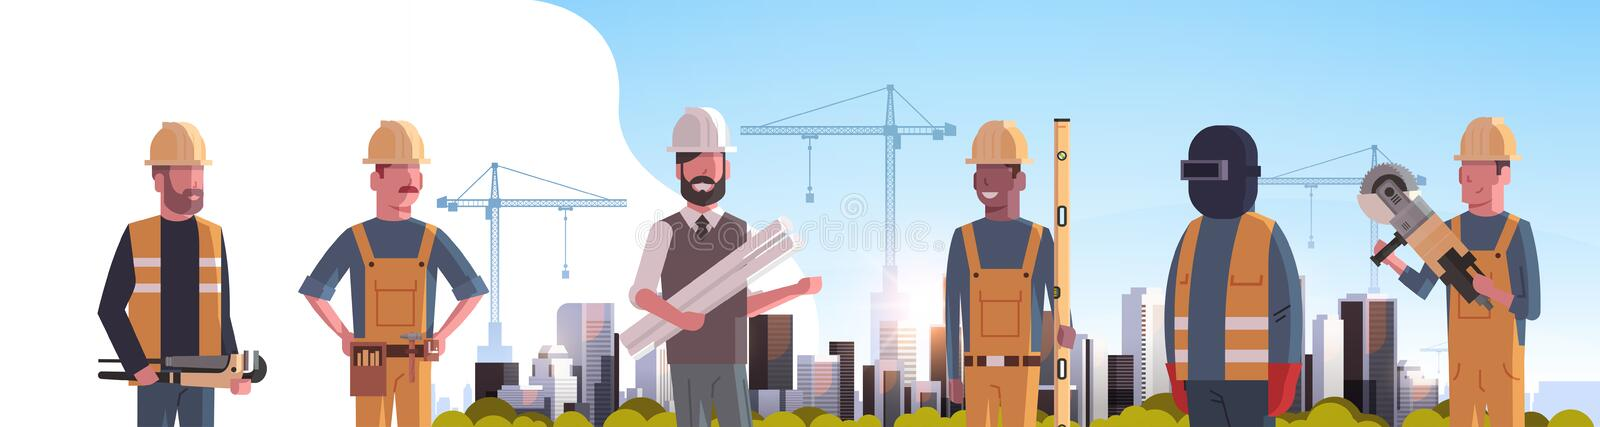 Construction workers team industrial technicians builders group over city construction site tower cranes building. Residential buildings cityscape background stock illustration